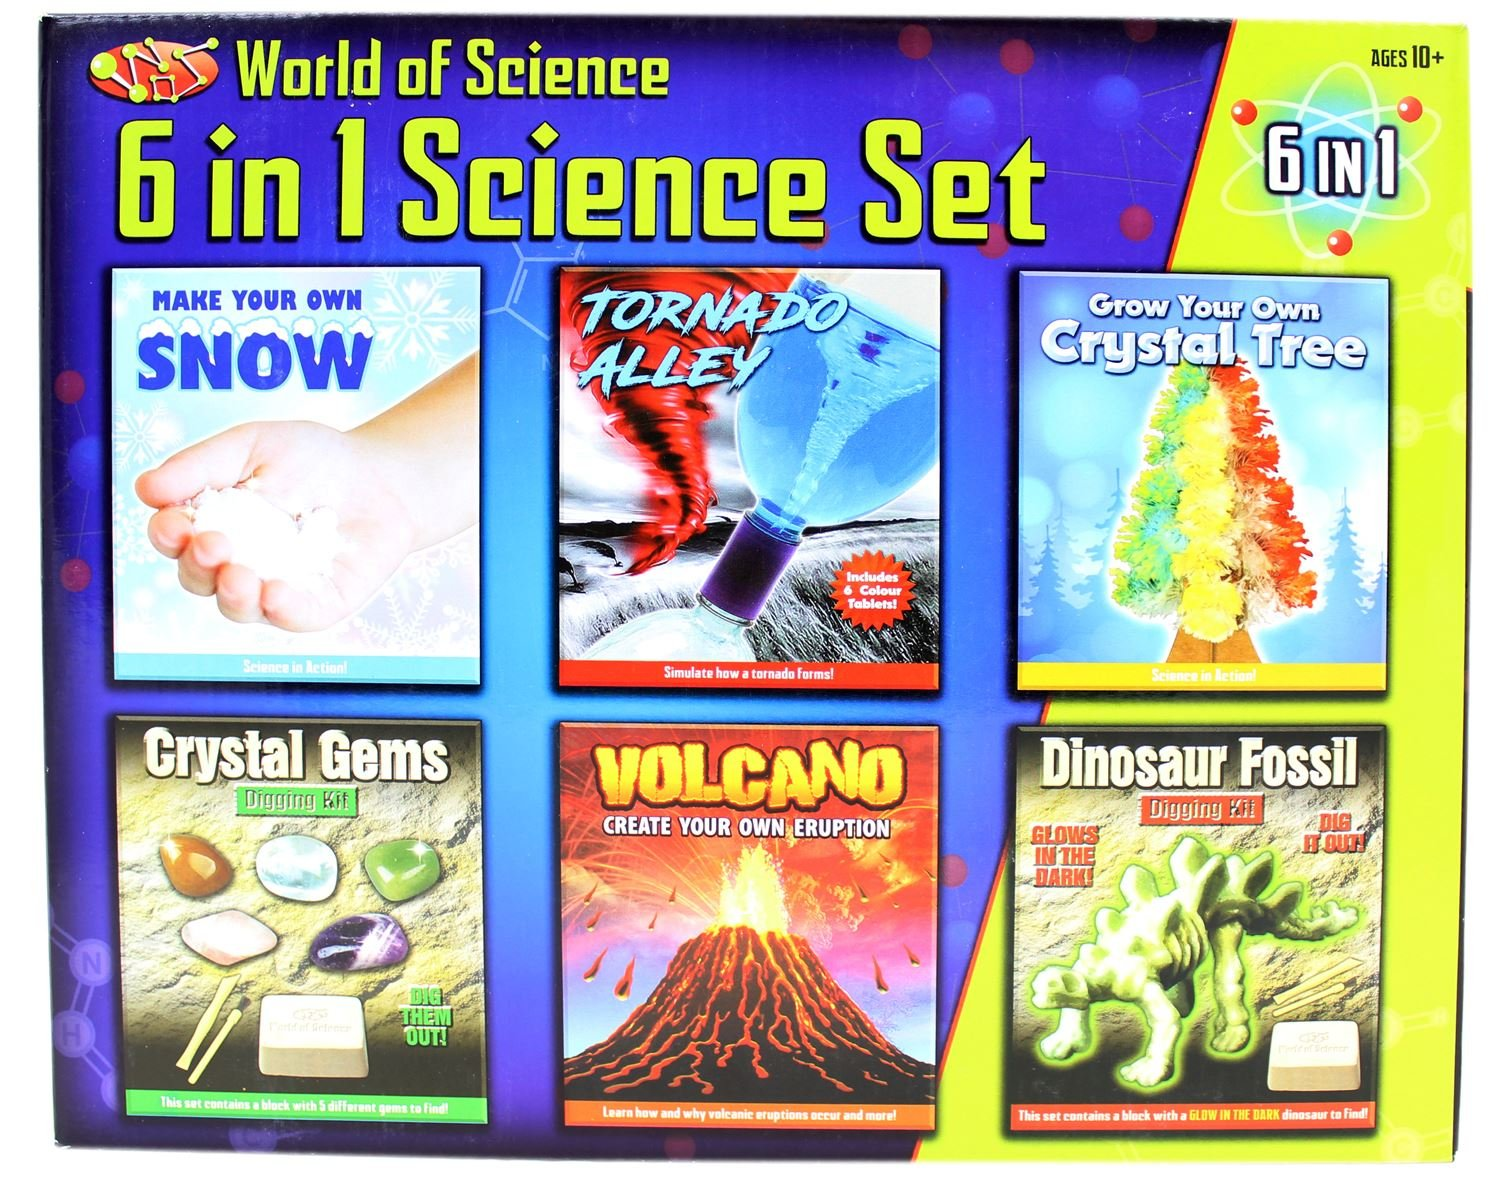 6 in 1 Science Set of: Make Your Own Snow, Tornado Alley, Crystal Gems Digging Kit, Volcano Eruption Kit, Grow Your Own Crystal Tree and Dinosaur Fossil Digging Kit.